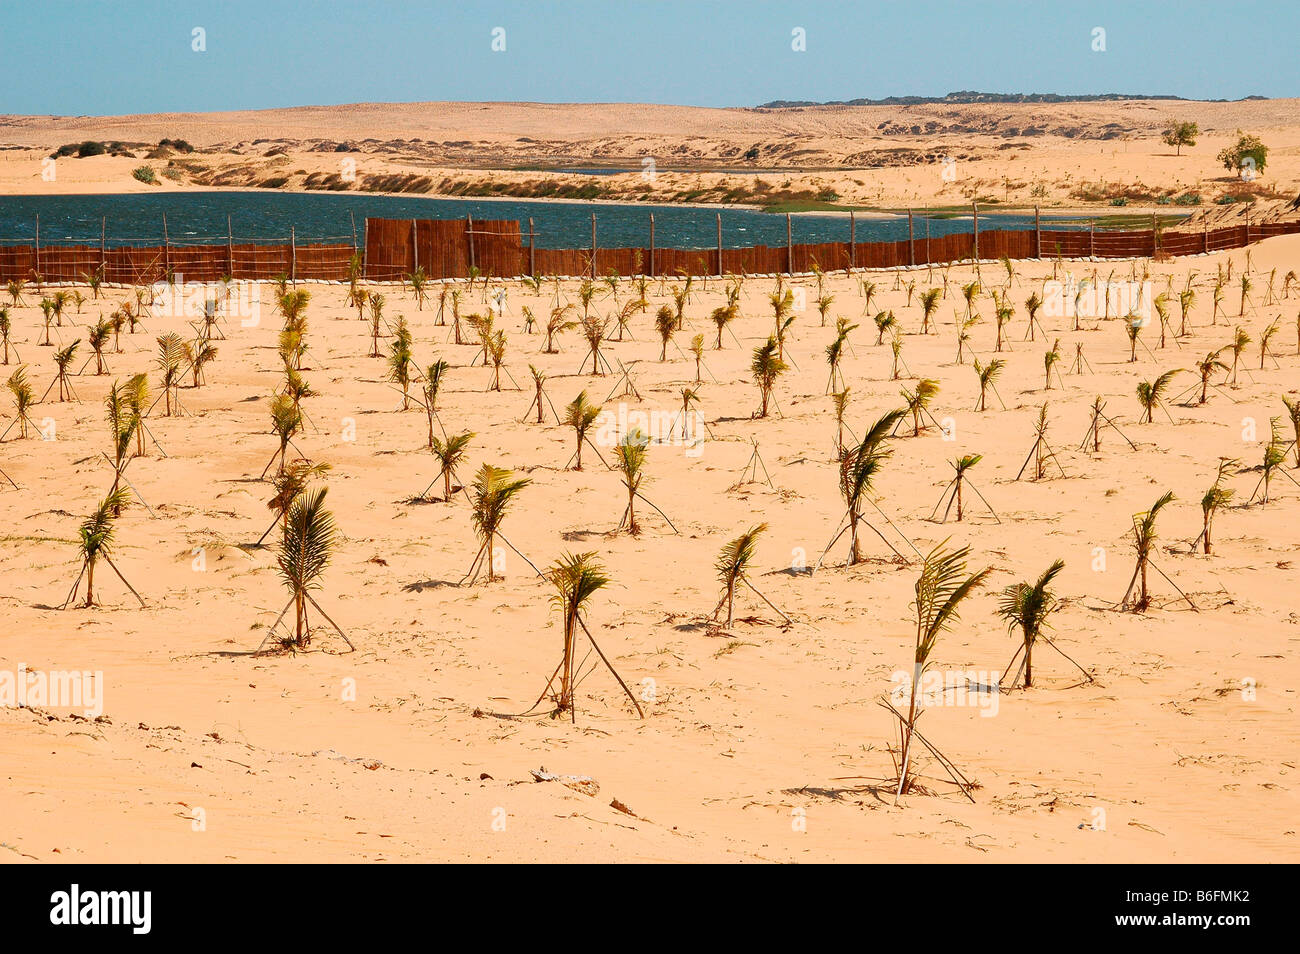 Plantation with young palms for a reforestation project for the containment of the growing desert areas, near Mui - Stock Image